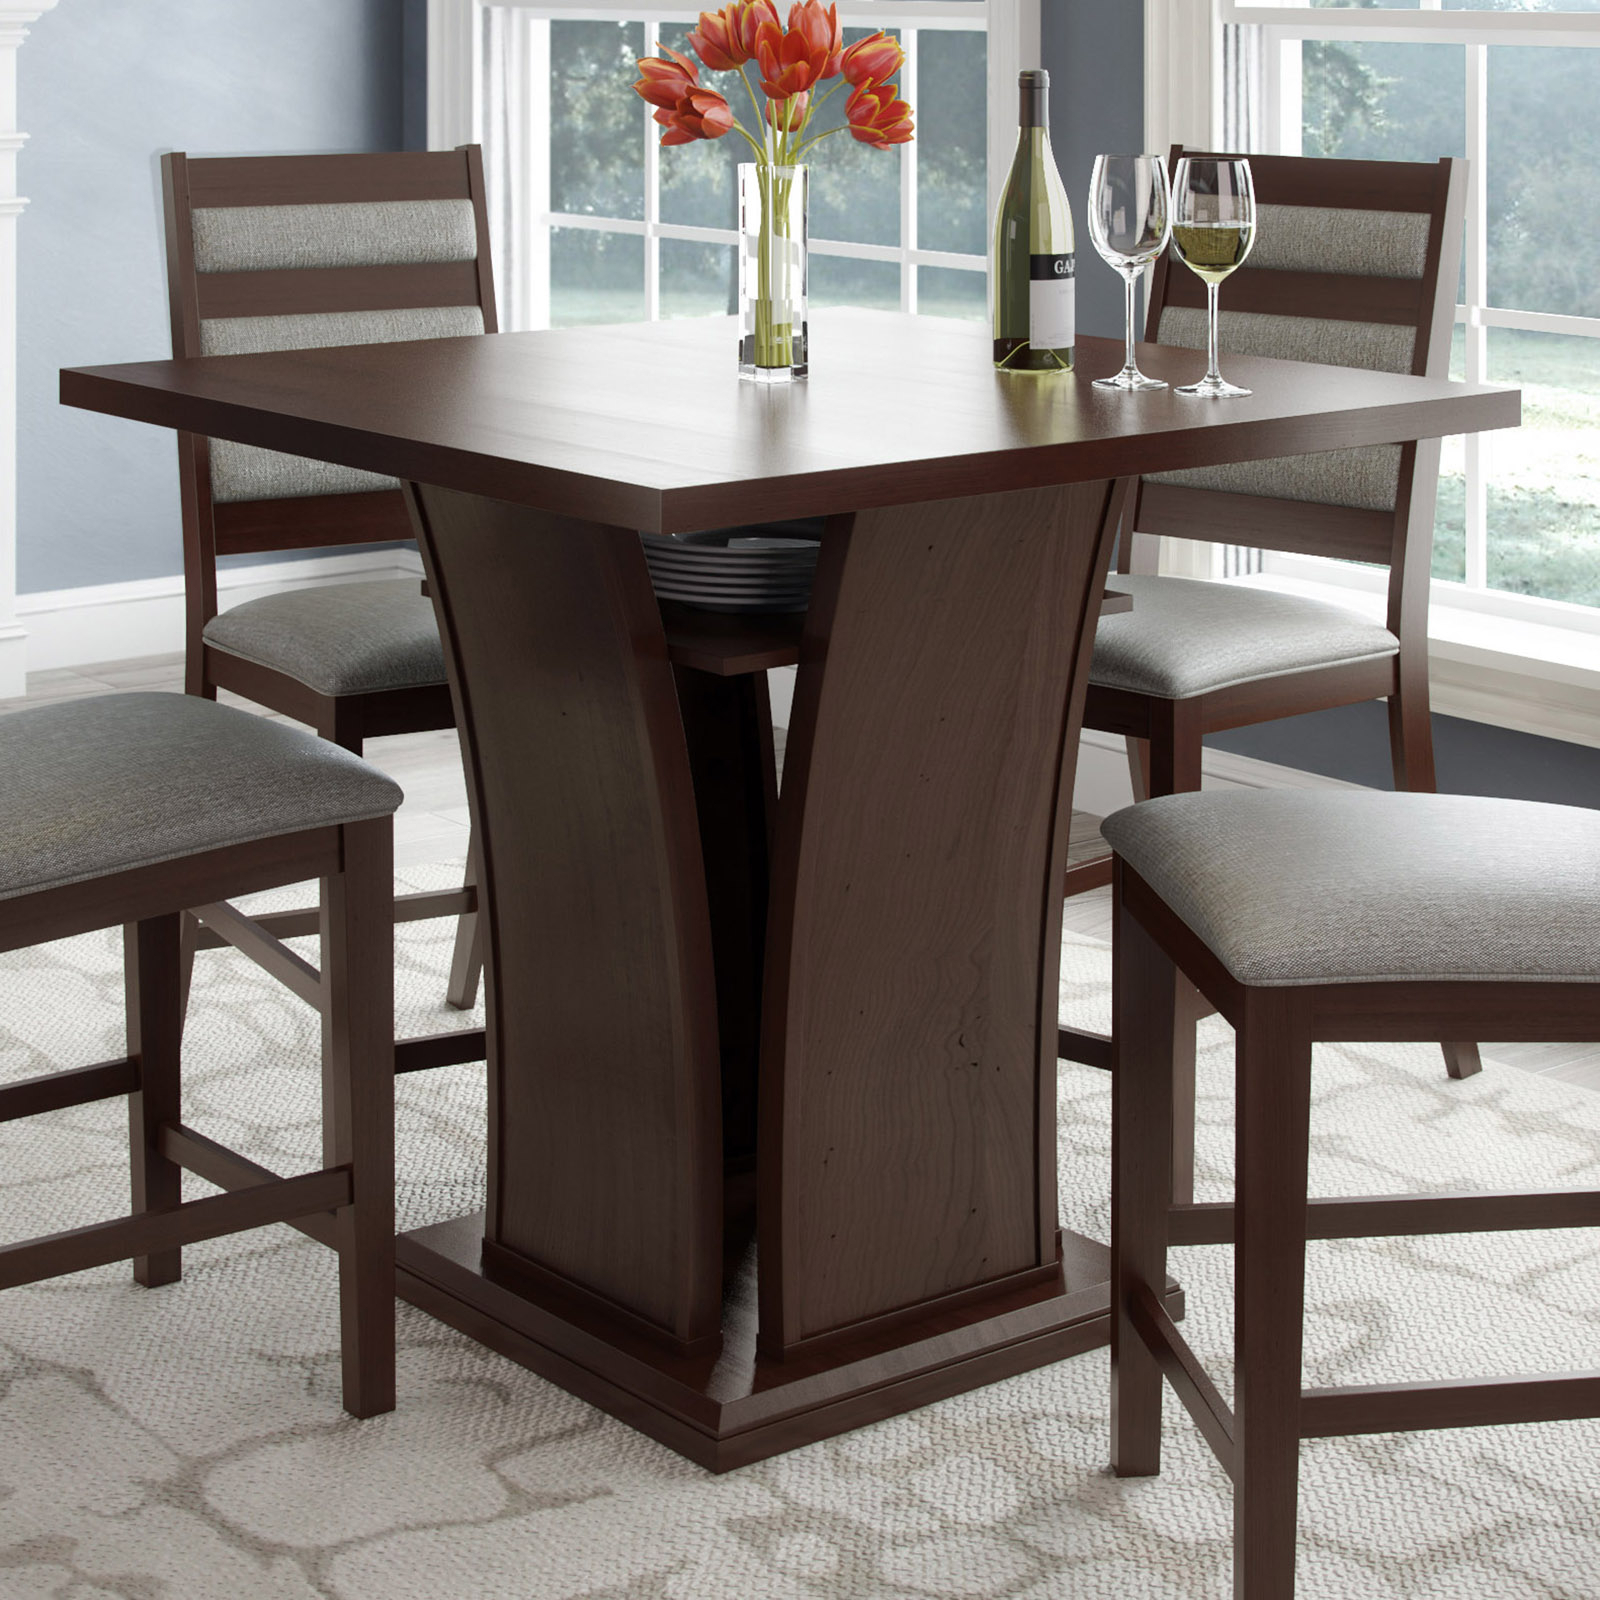 Corliving Bistro Counter Height Dining Table With Curved In 2018 Nakano Counter Height Pedestal Dining Tables (View 2 of 15)